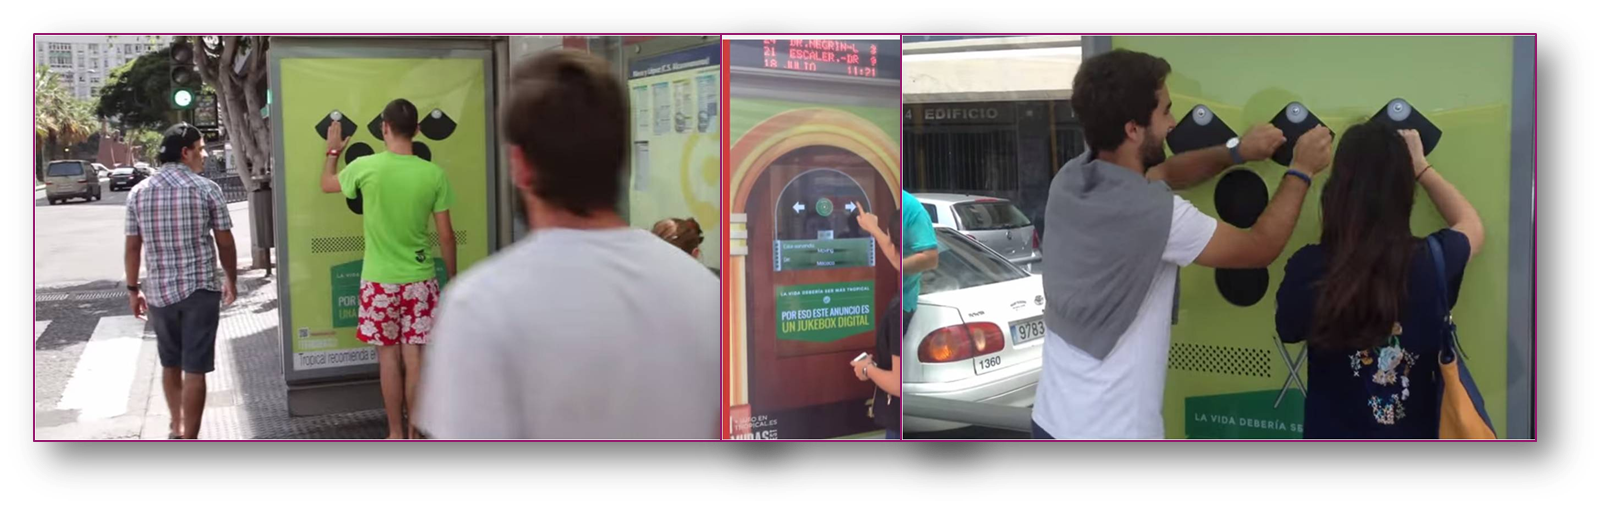 July 2014. Tropical, the Gran Canarian brewed beer brought fun to residents in Gran Canaria urging them to see the tropical side of life. Interactive shelters invited passersby to use the time waiting for the bus and make it fun and entertaining. One shelter was transformed in a Jukebox, complete with an interactive display where users could select from a range of songs. Another shelter was turned into an electronic drum where users created their own tune and showcased their tropical side.